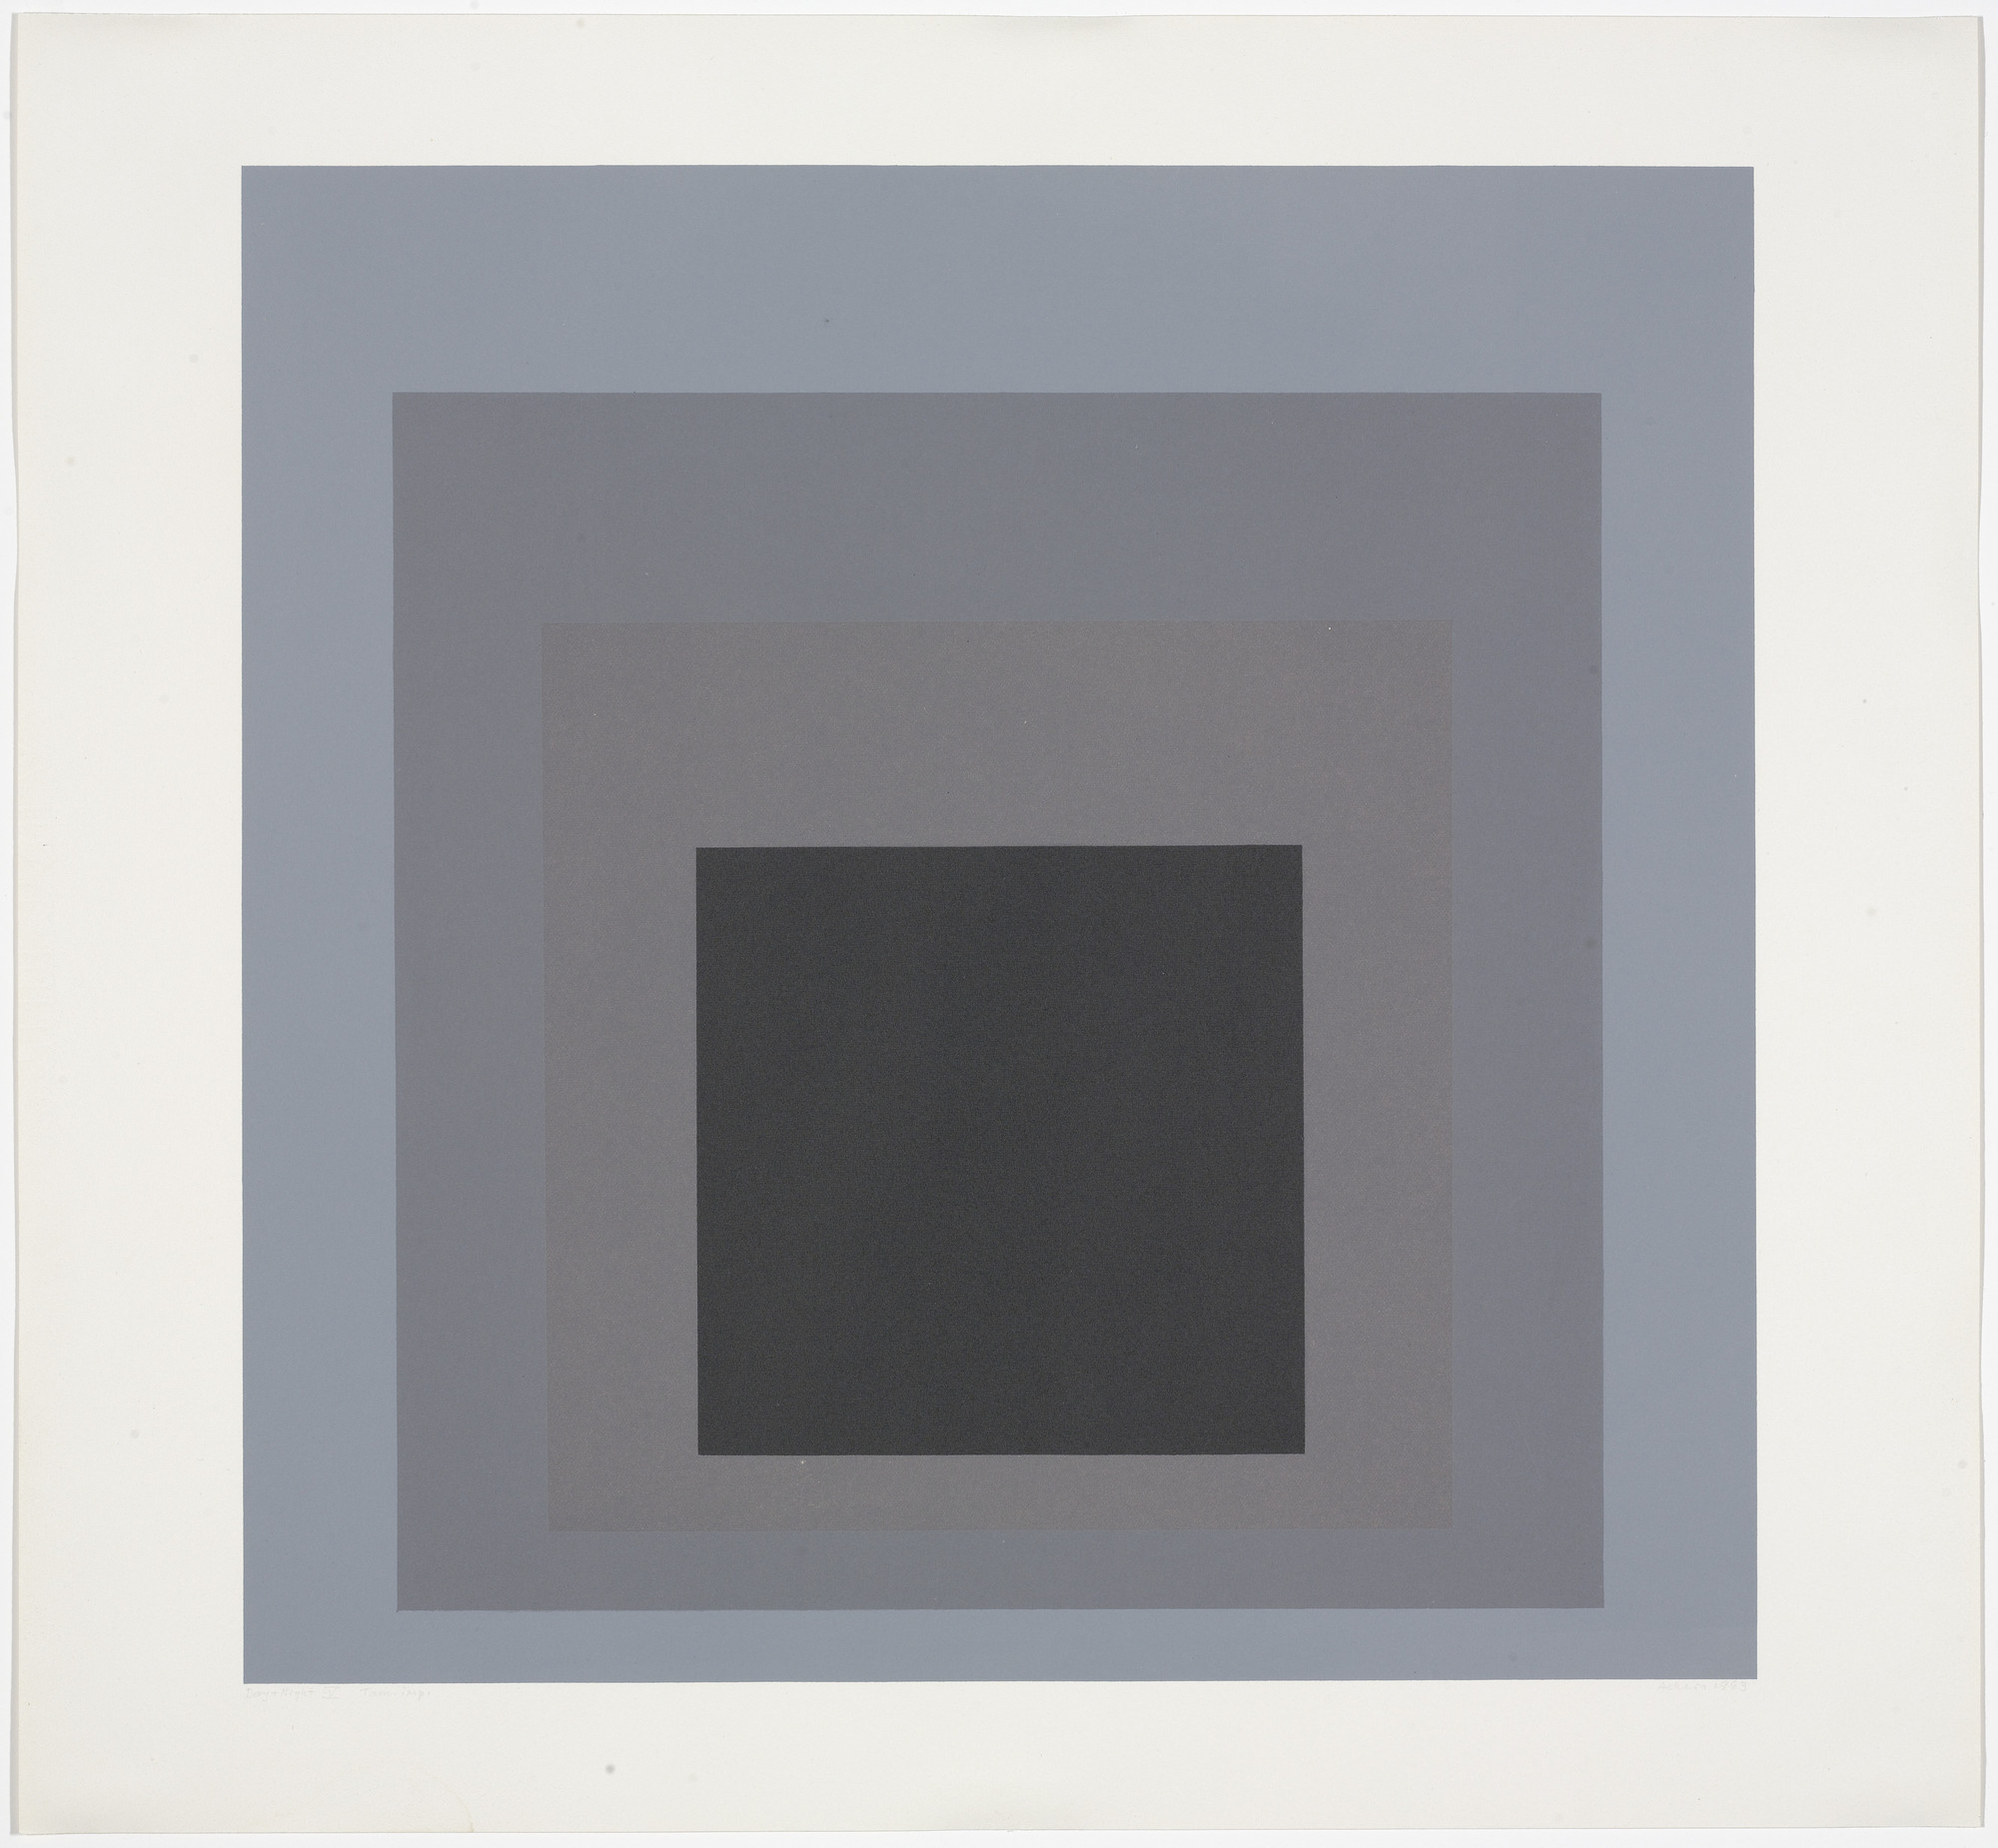 Josef Albers. Day + Night V from Day and Night: Homage to the Square. 1963